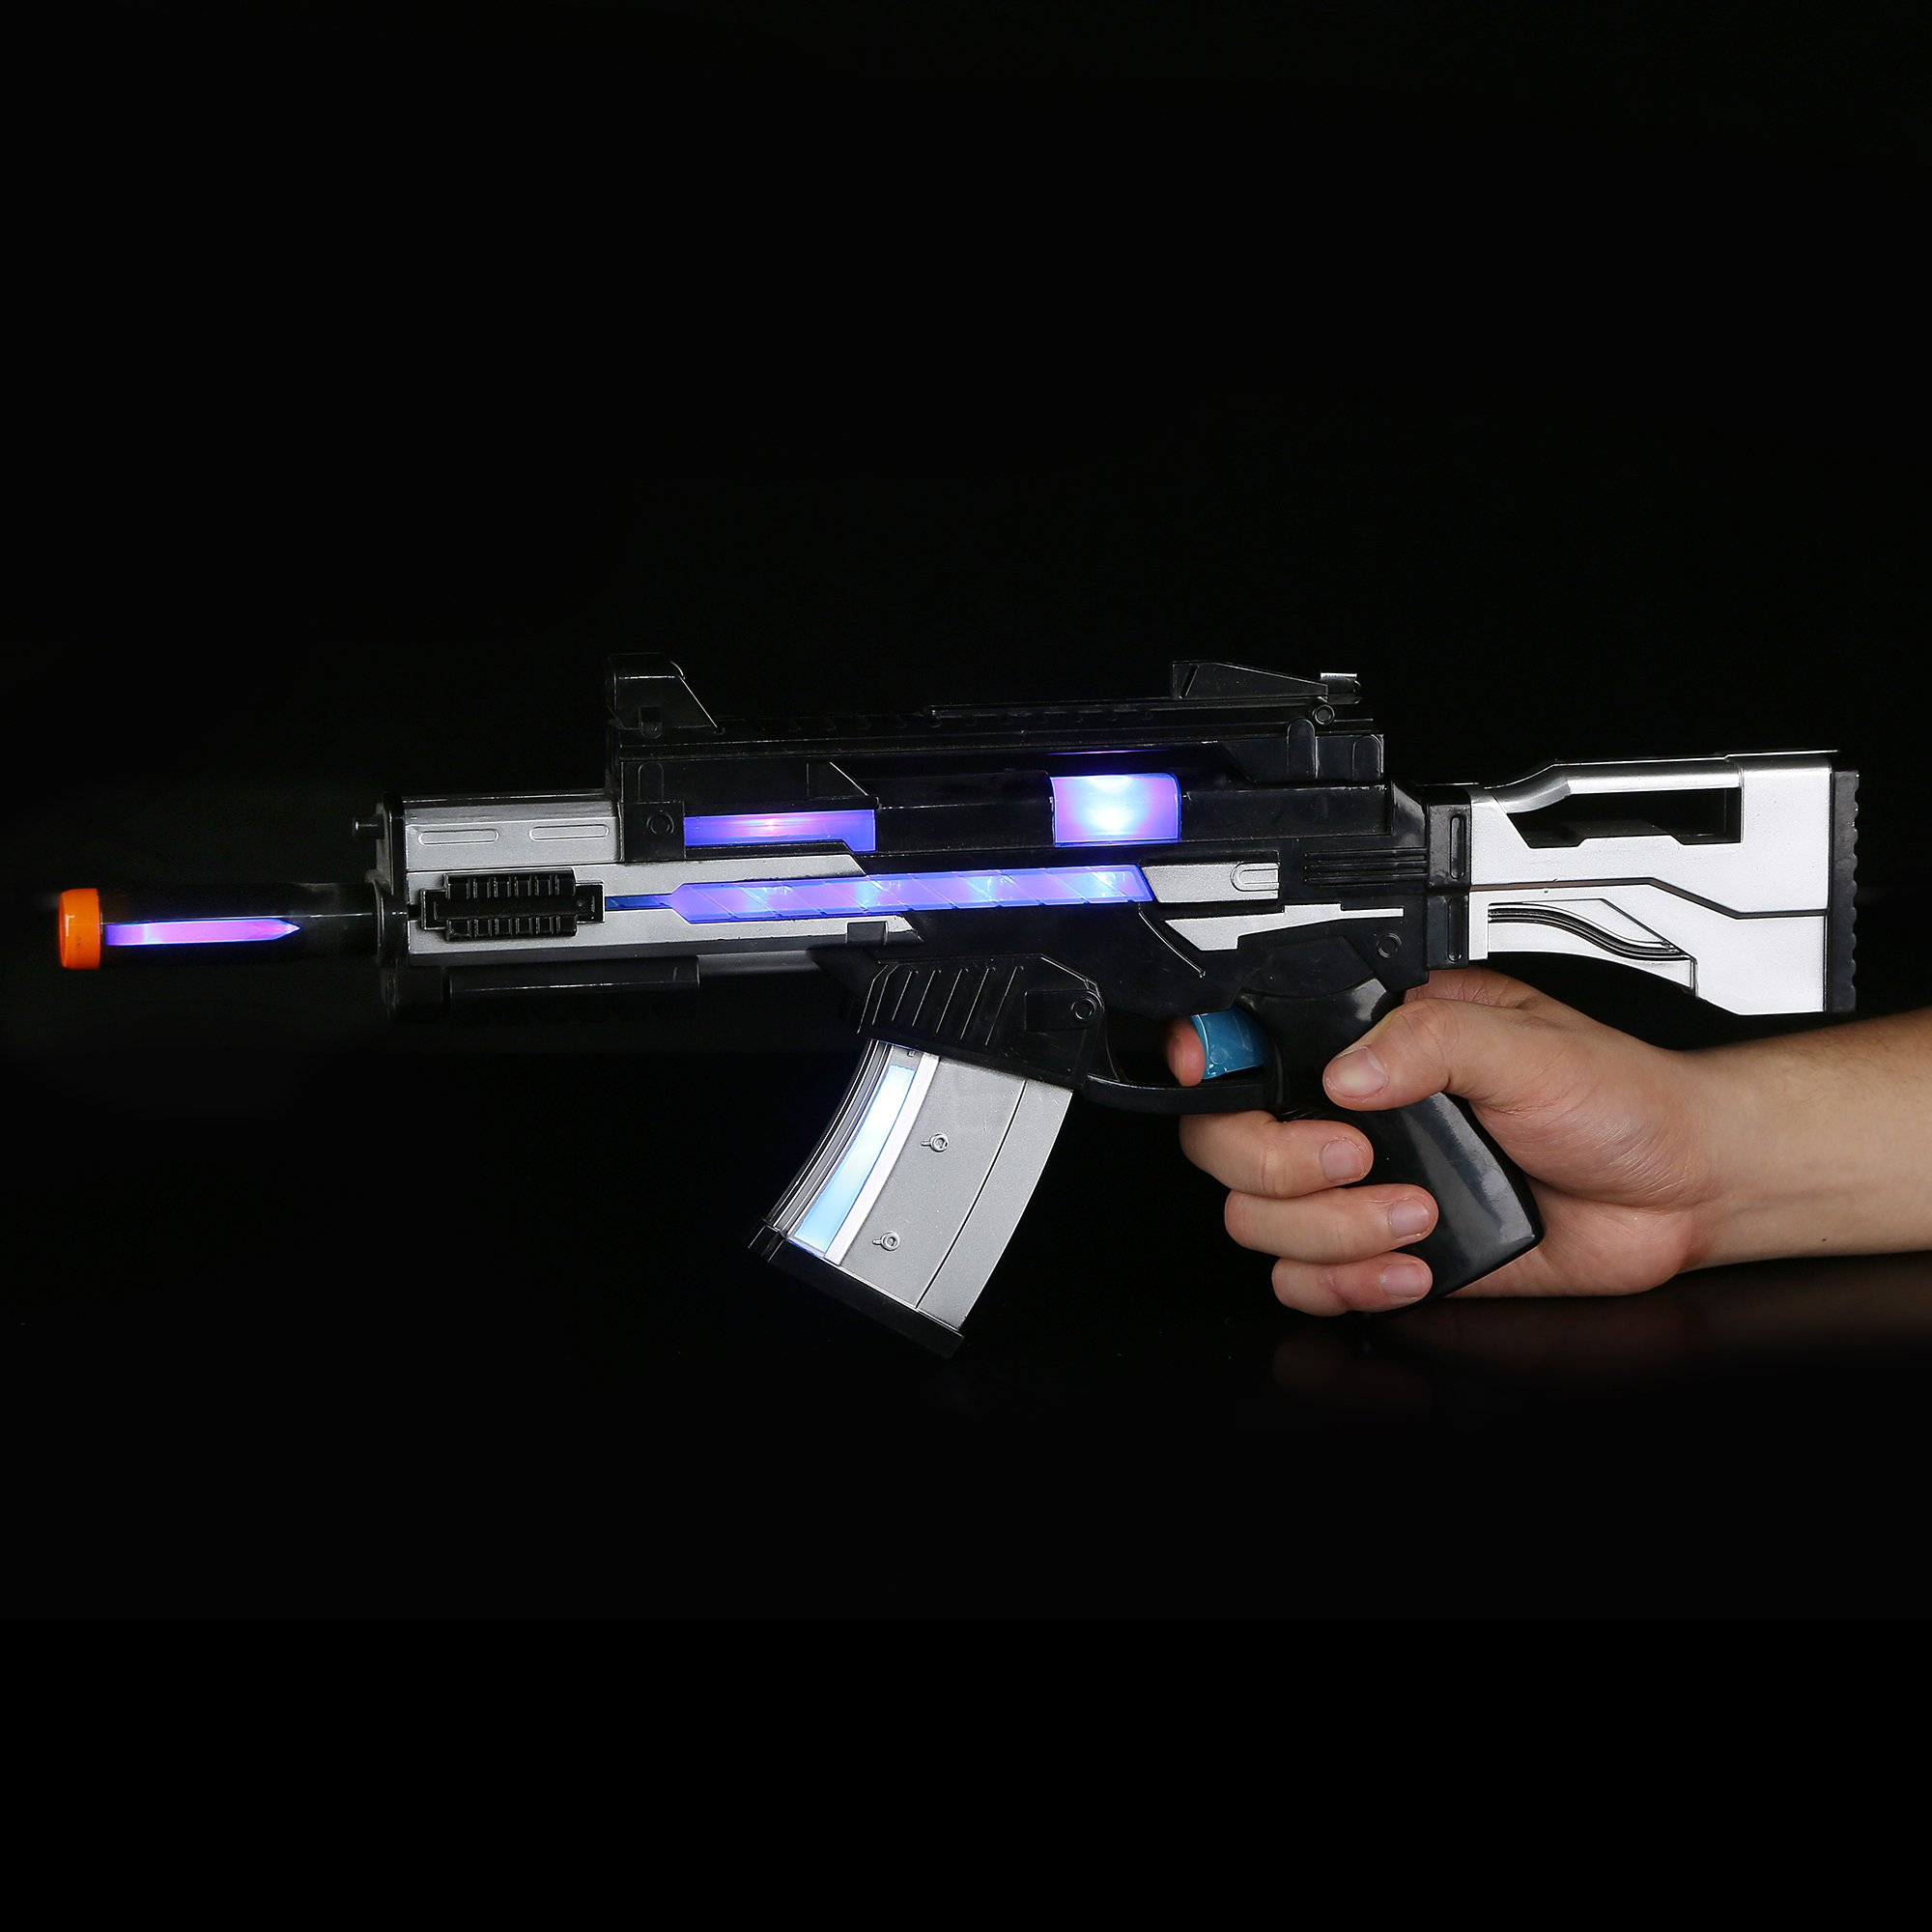 Fun Central AU491 17 Inch LED Light Up SW Blaster with Sounds Effect, LED Blaster Toy Gun, Light Up Blaster Gun for kids, Blaster Gun - for Party Favors, Gifts, Prizes, Rewards, Giveaways by Fun Central (Image #2)